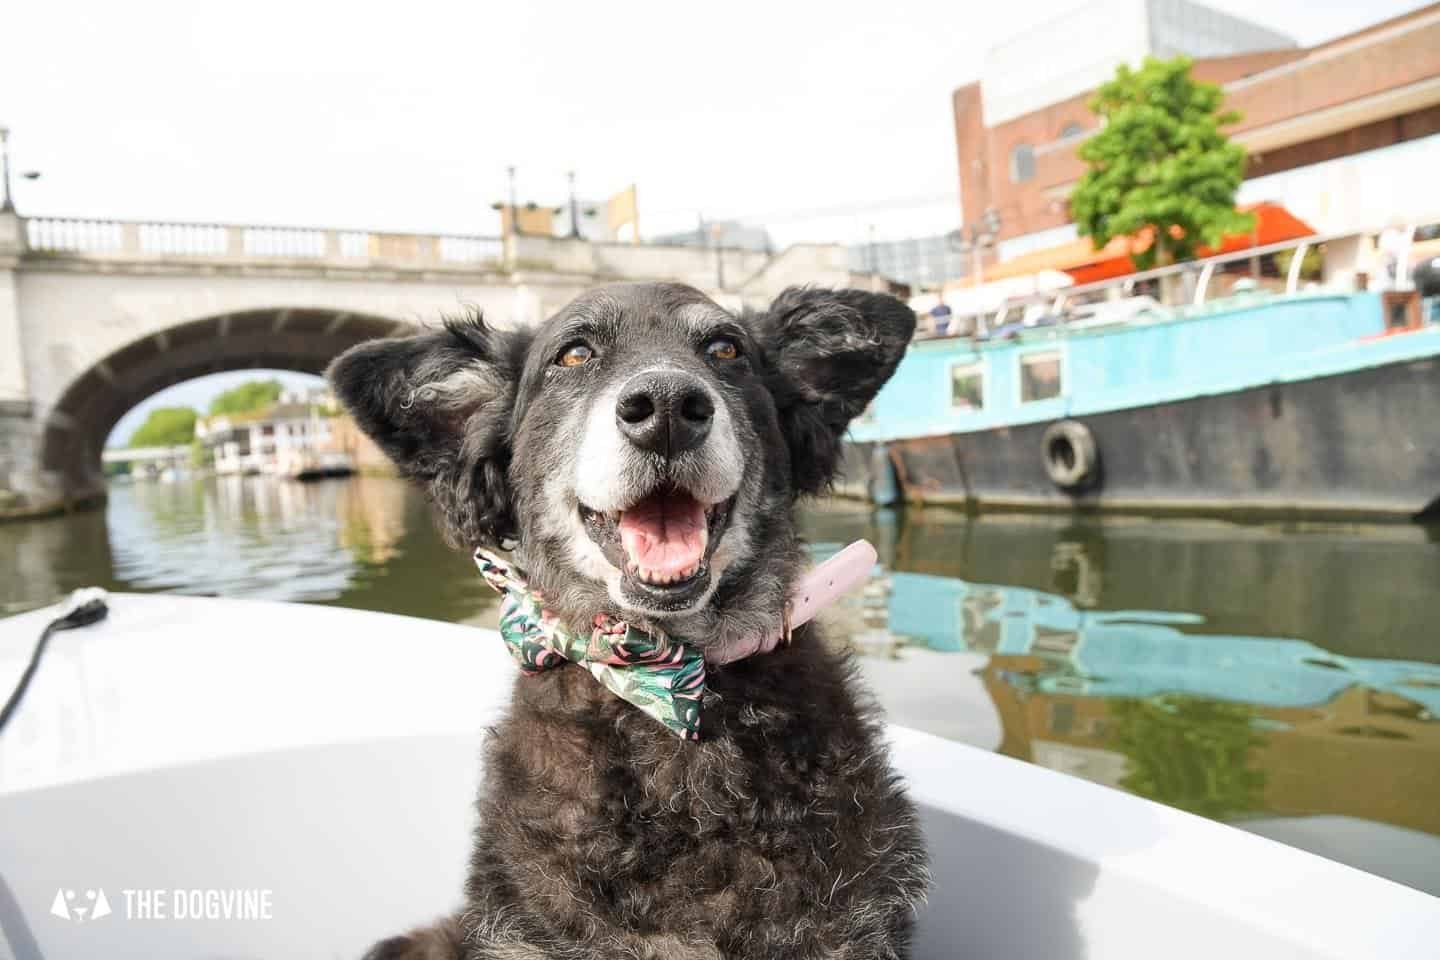 Dog-friendly Go Boat Kingston Upon Thames 26